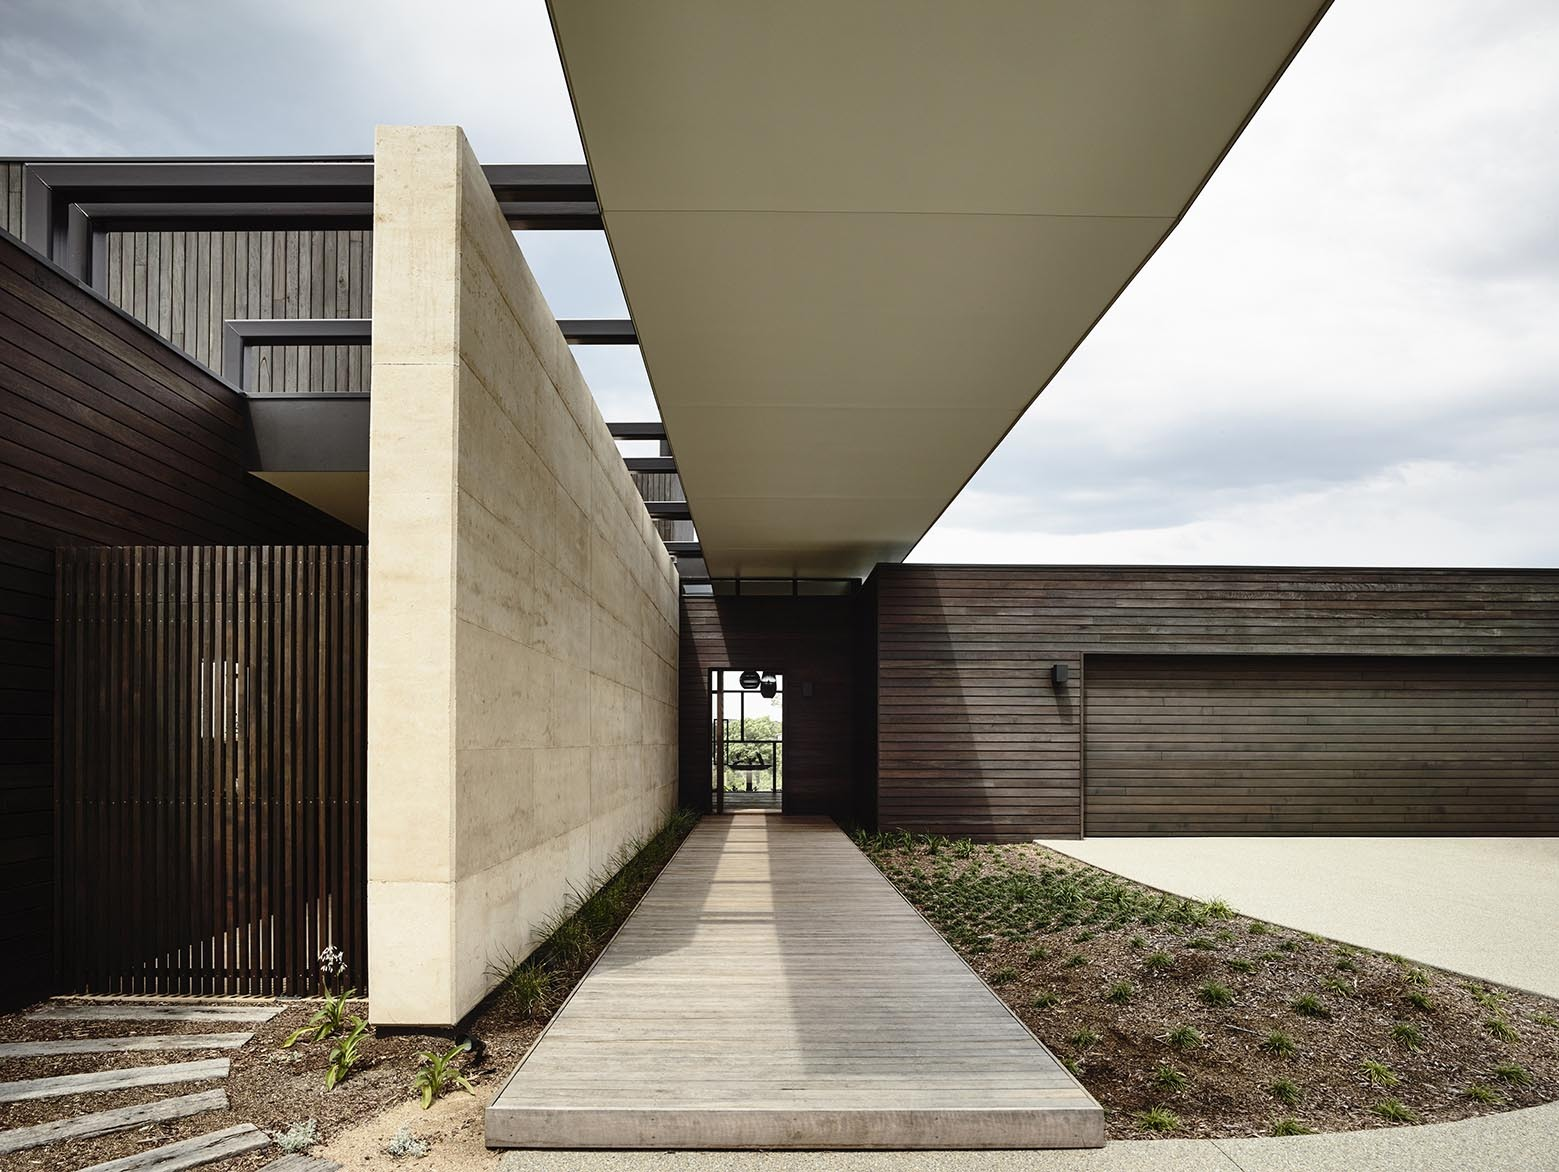 Architecture: Tranquility Beach House / Wolveridge Architects